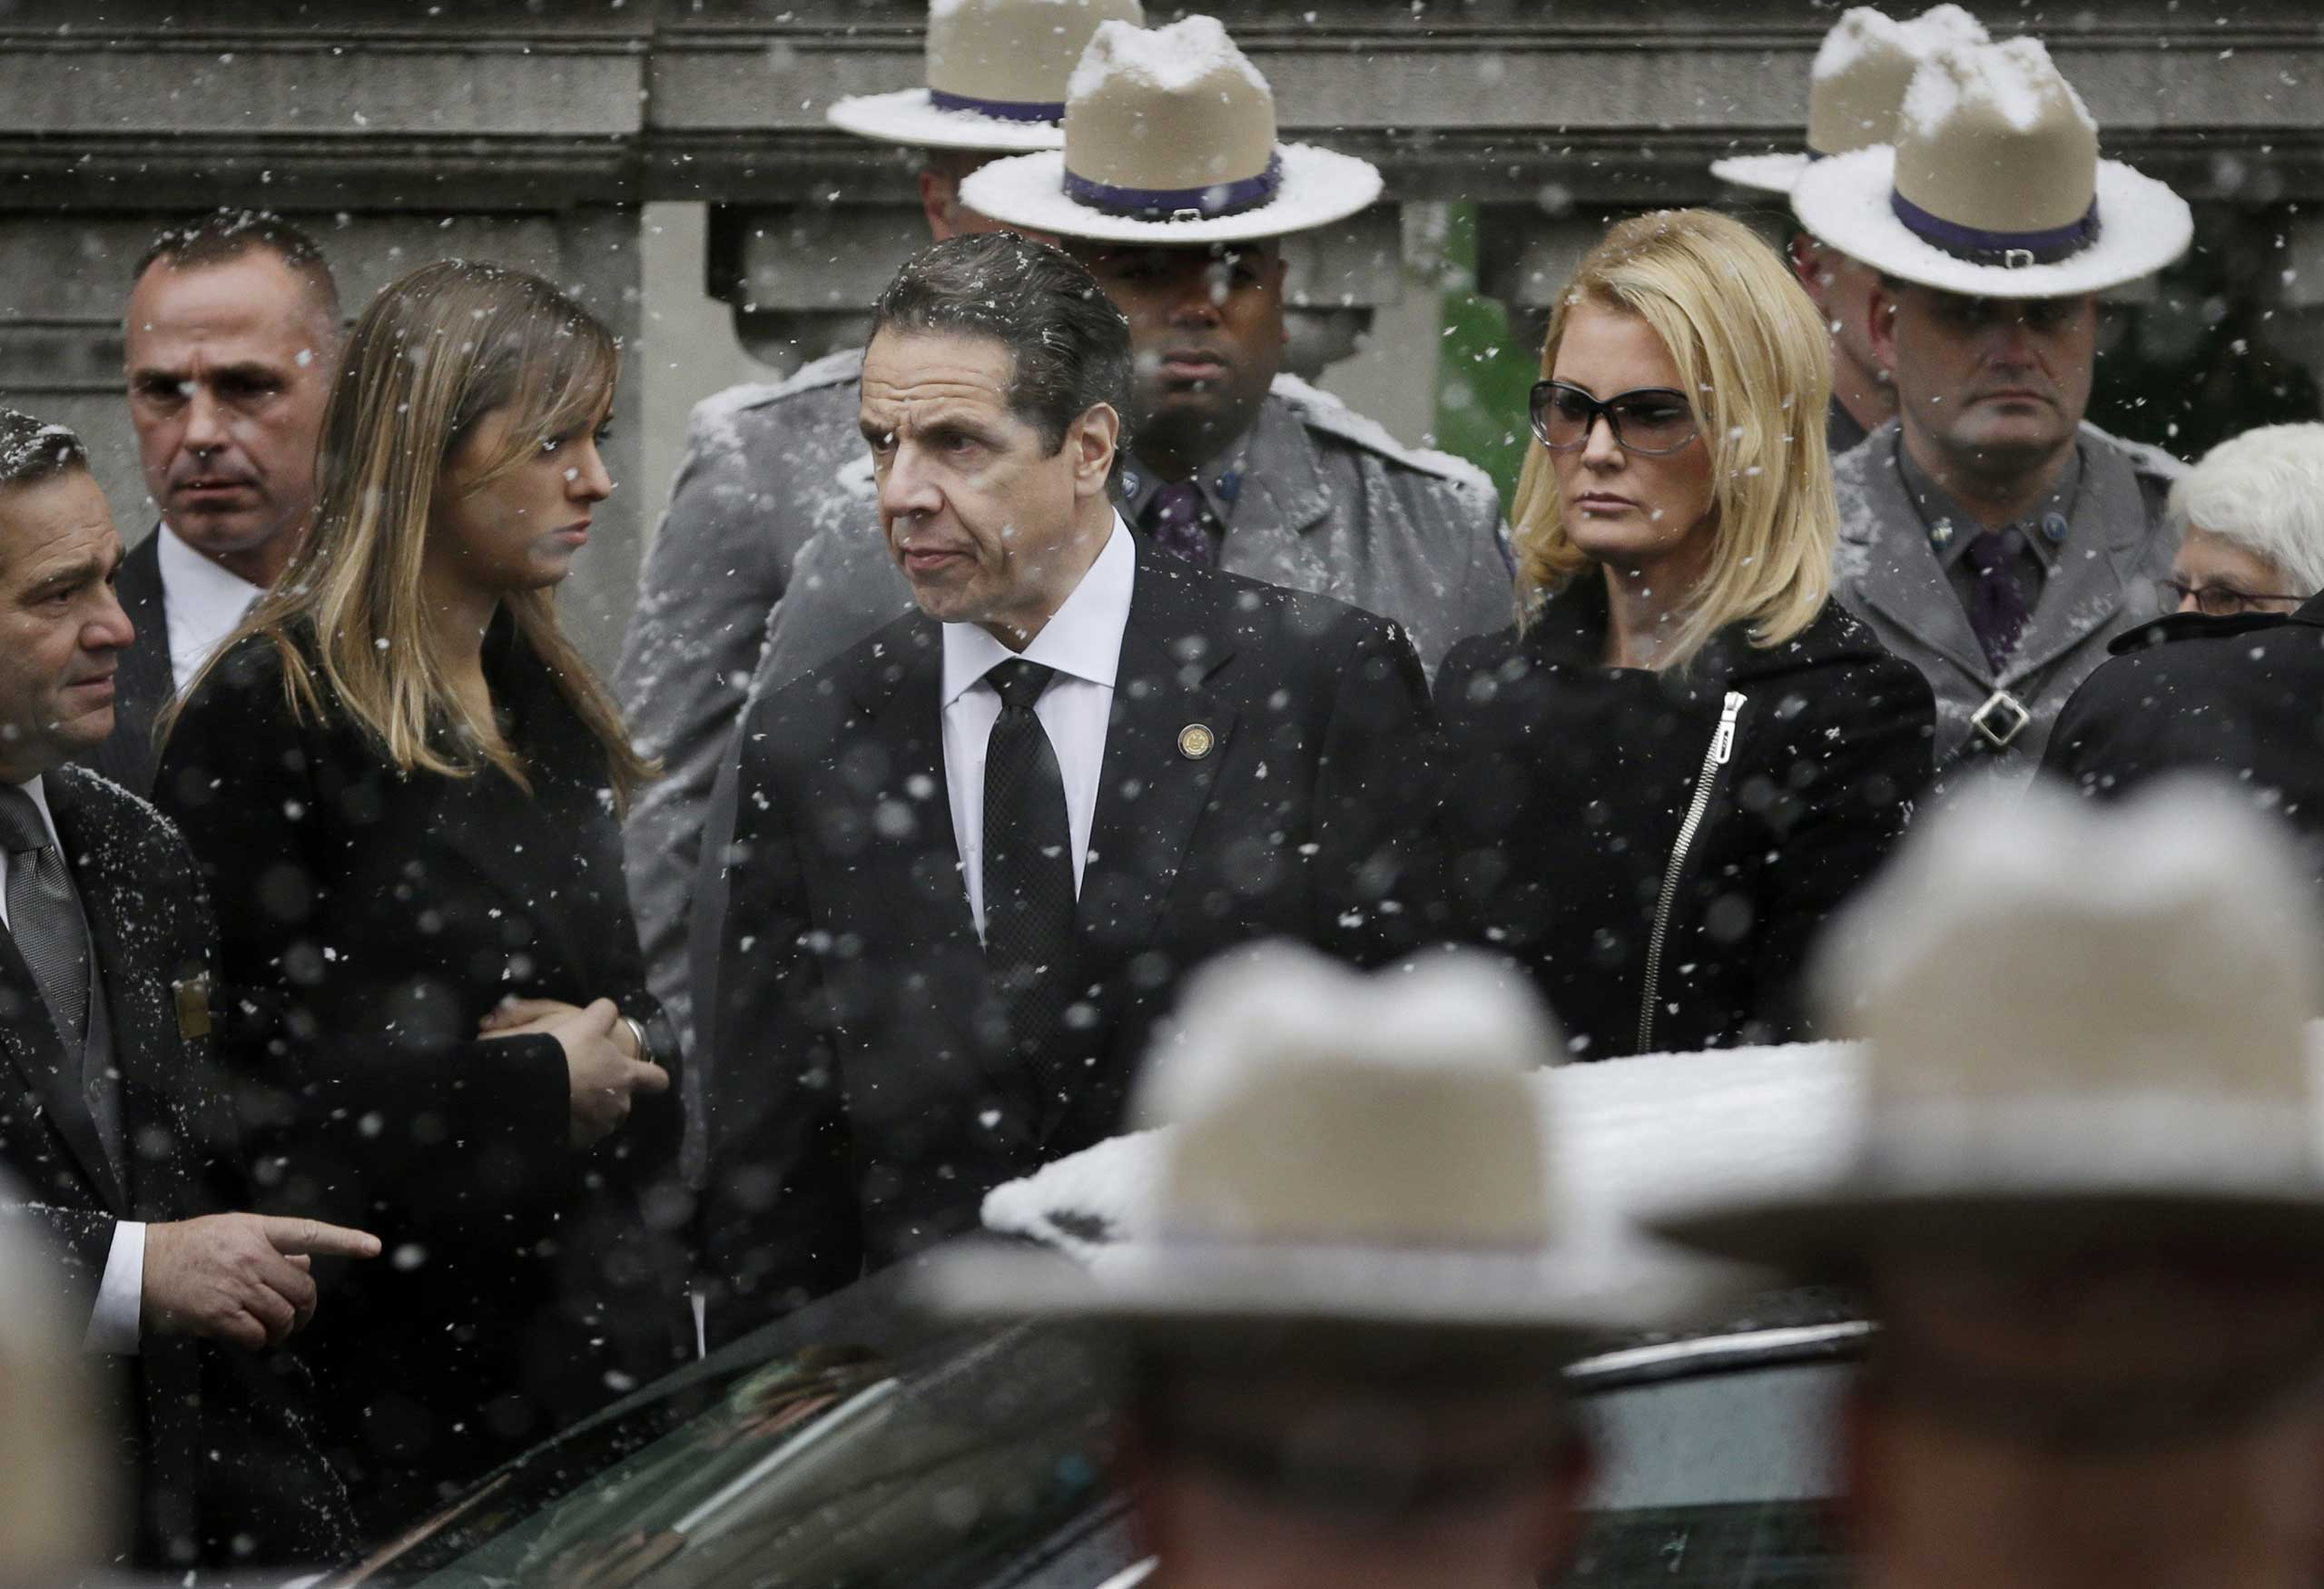 New York Governor Andrew Cuomo, center, waits with his girlfriend Sandra Lee while the body of his father, Mario Cuomo, is carried into Church of St. Ignatius Loyola for his funeral in New York, Tuesday, Jan. 6, 2015. Cuomo, 82, died in his Manhattan home on Jan. 1, hours after his son was inaugurated for a second term. (AP Photo/Seth Wenig)